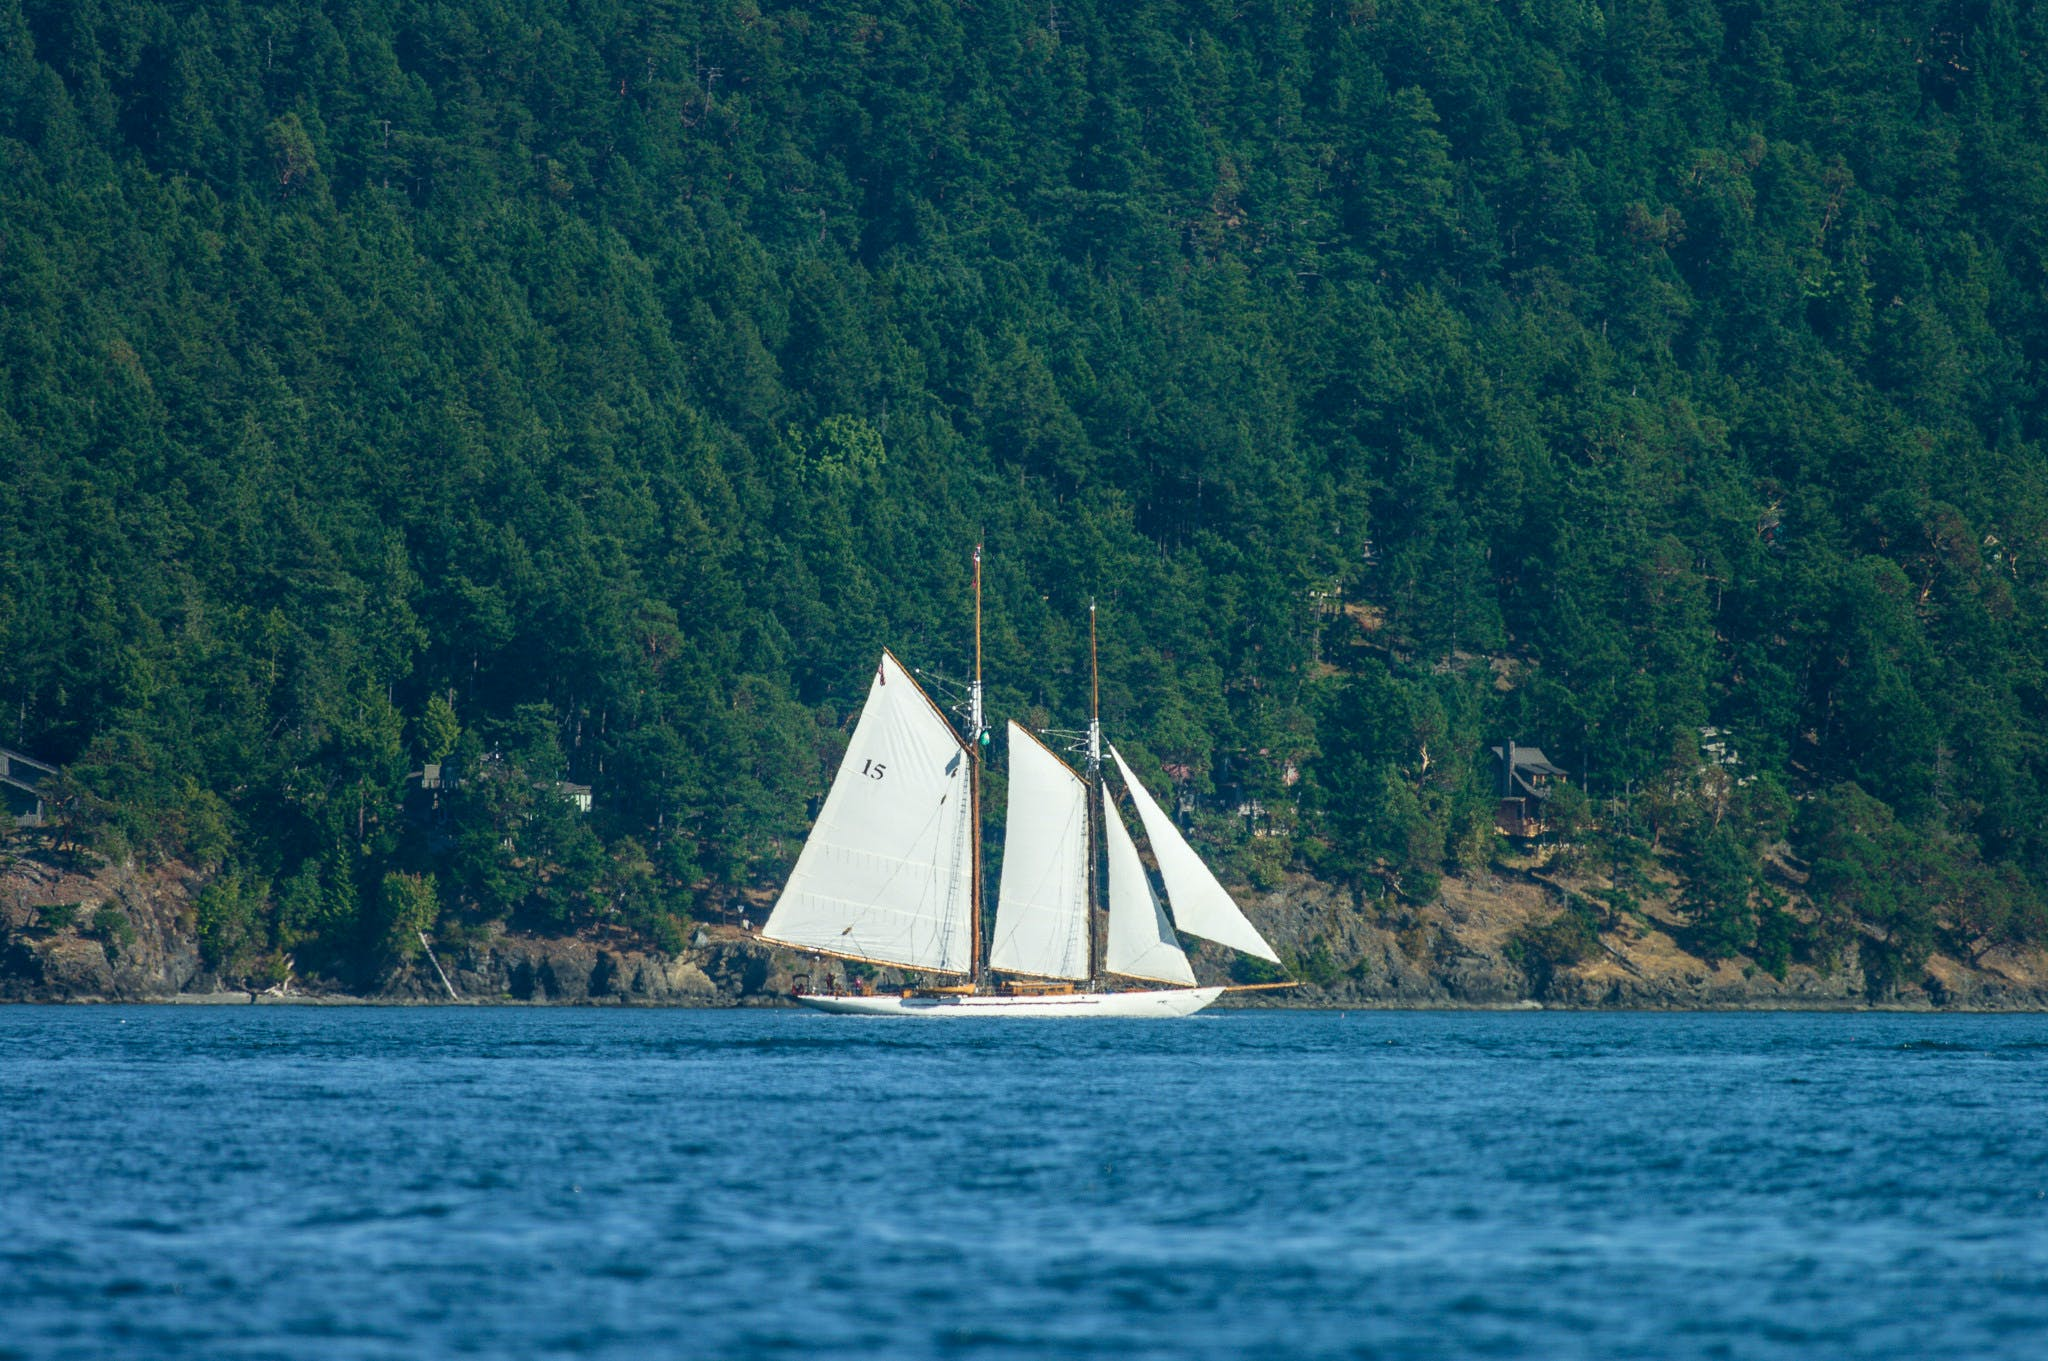 a large sailboat cruising through the water in the san juans